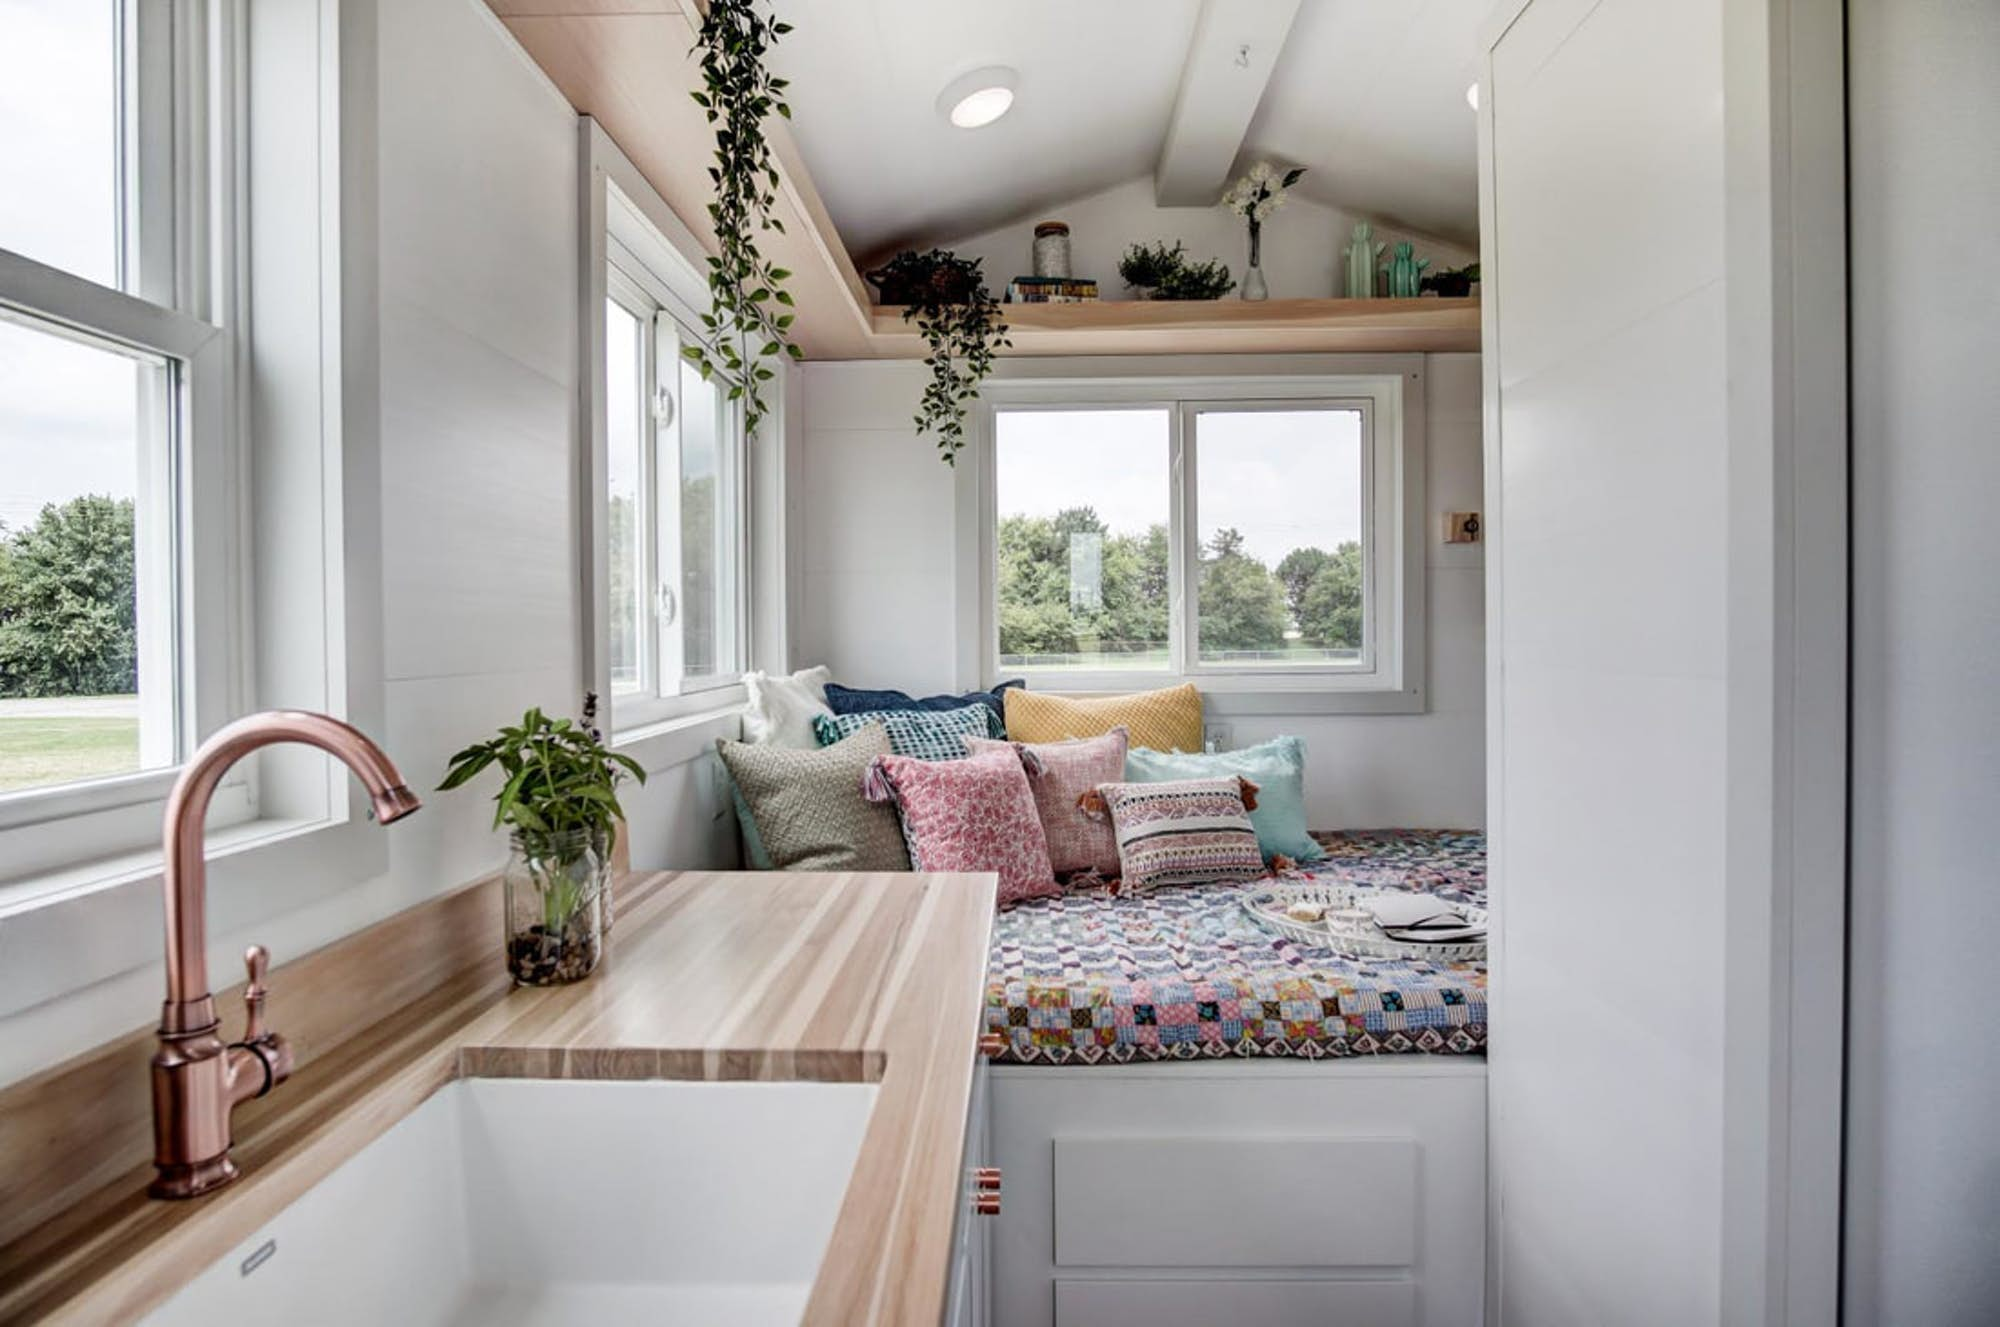 Top Tiny Homes - Inside The Nugget